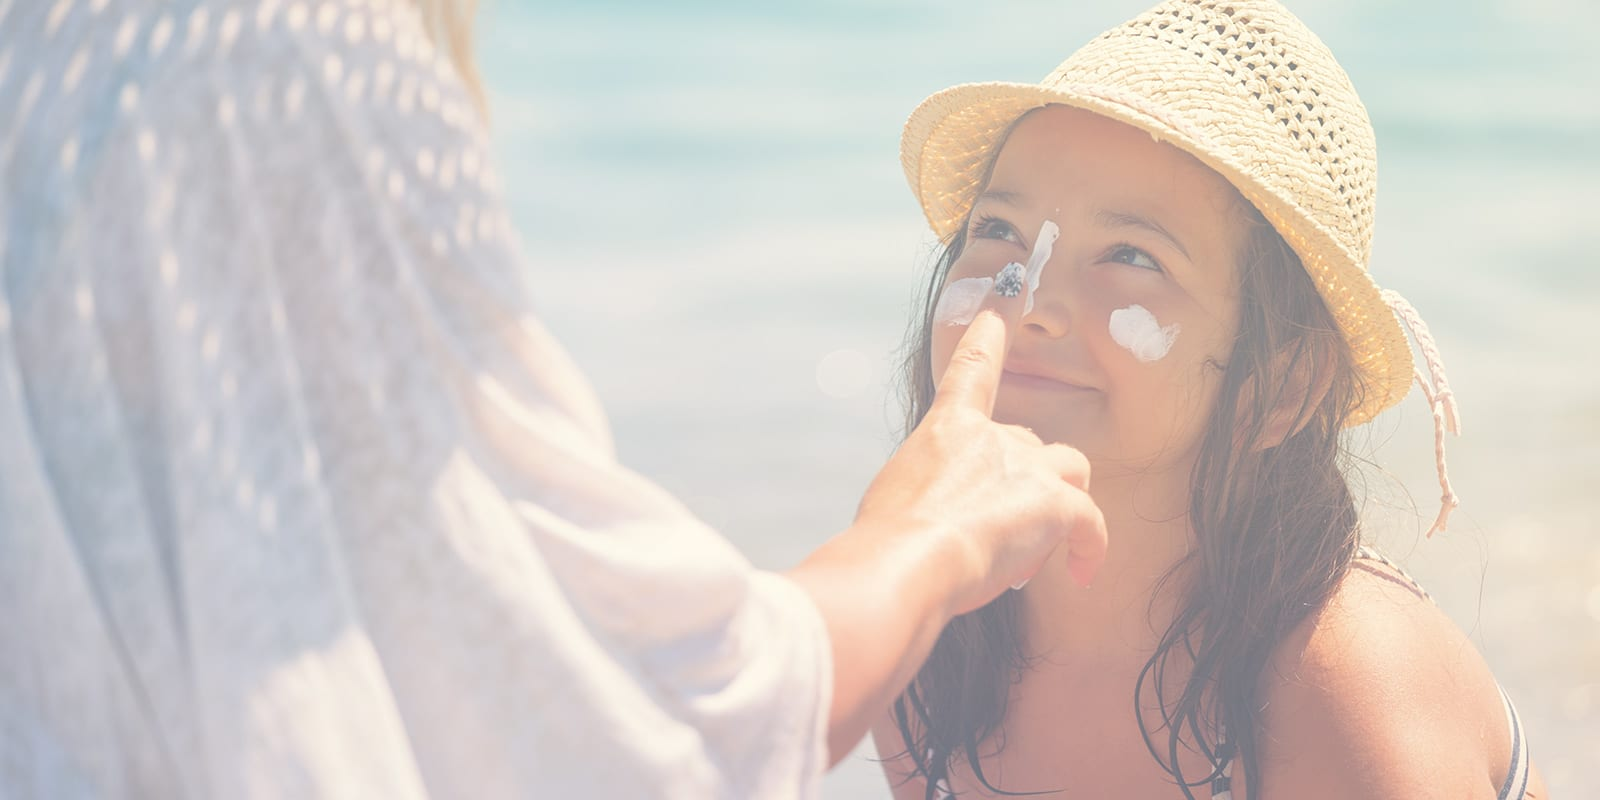 A mom putting sun screen on her daughter's face